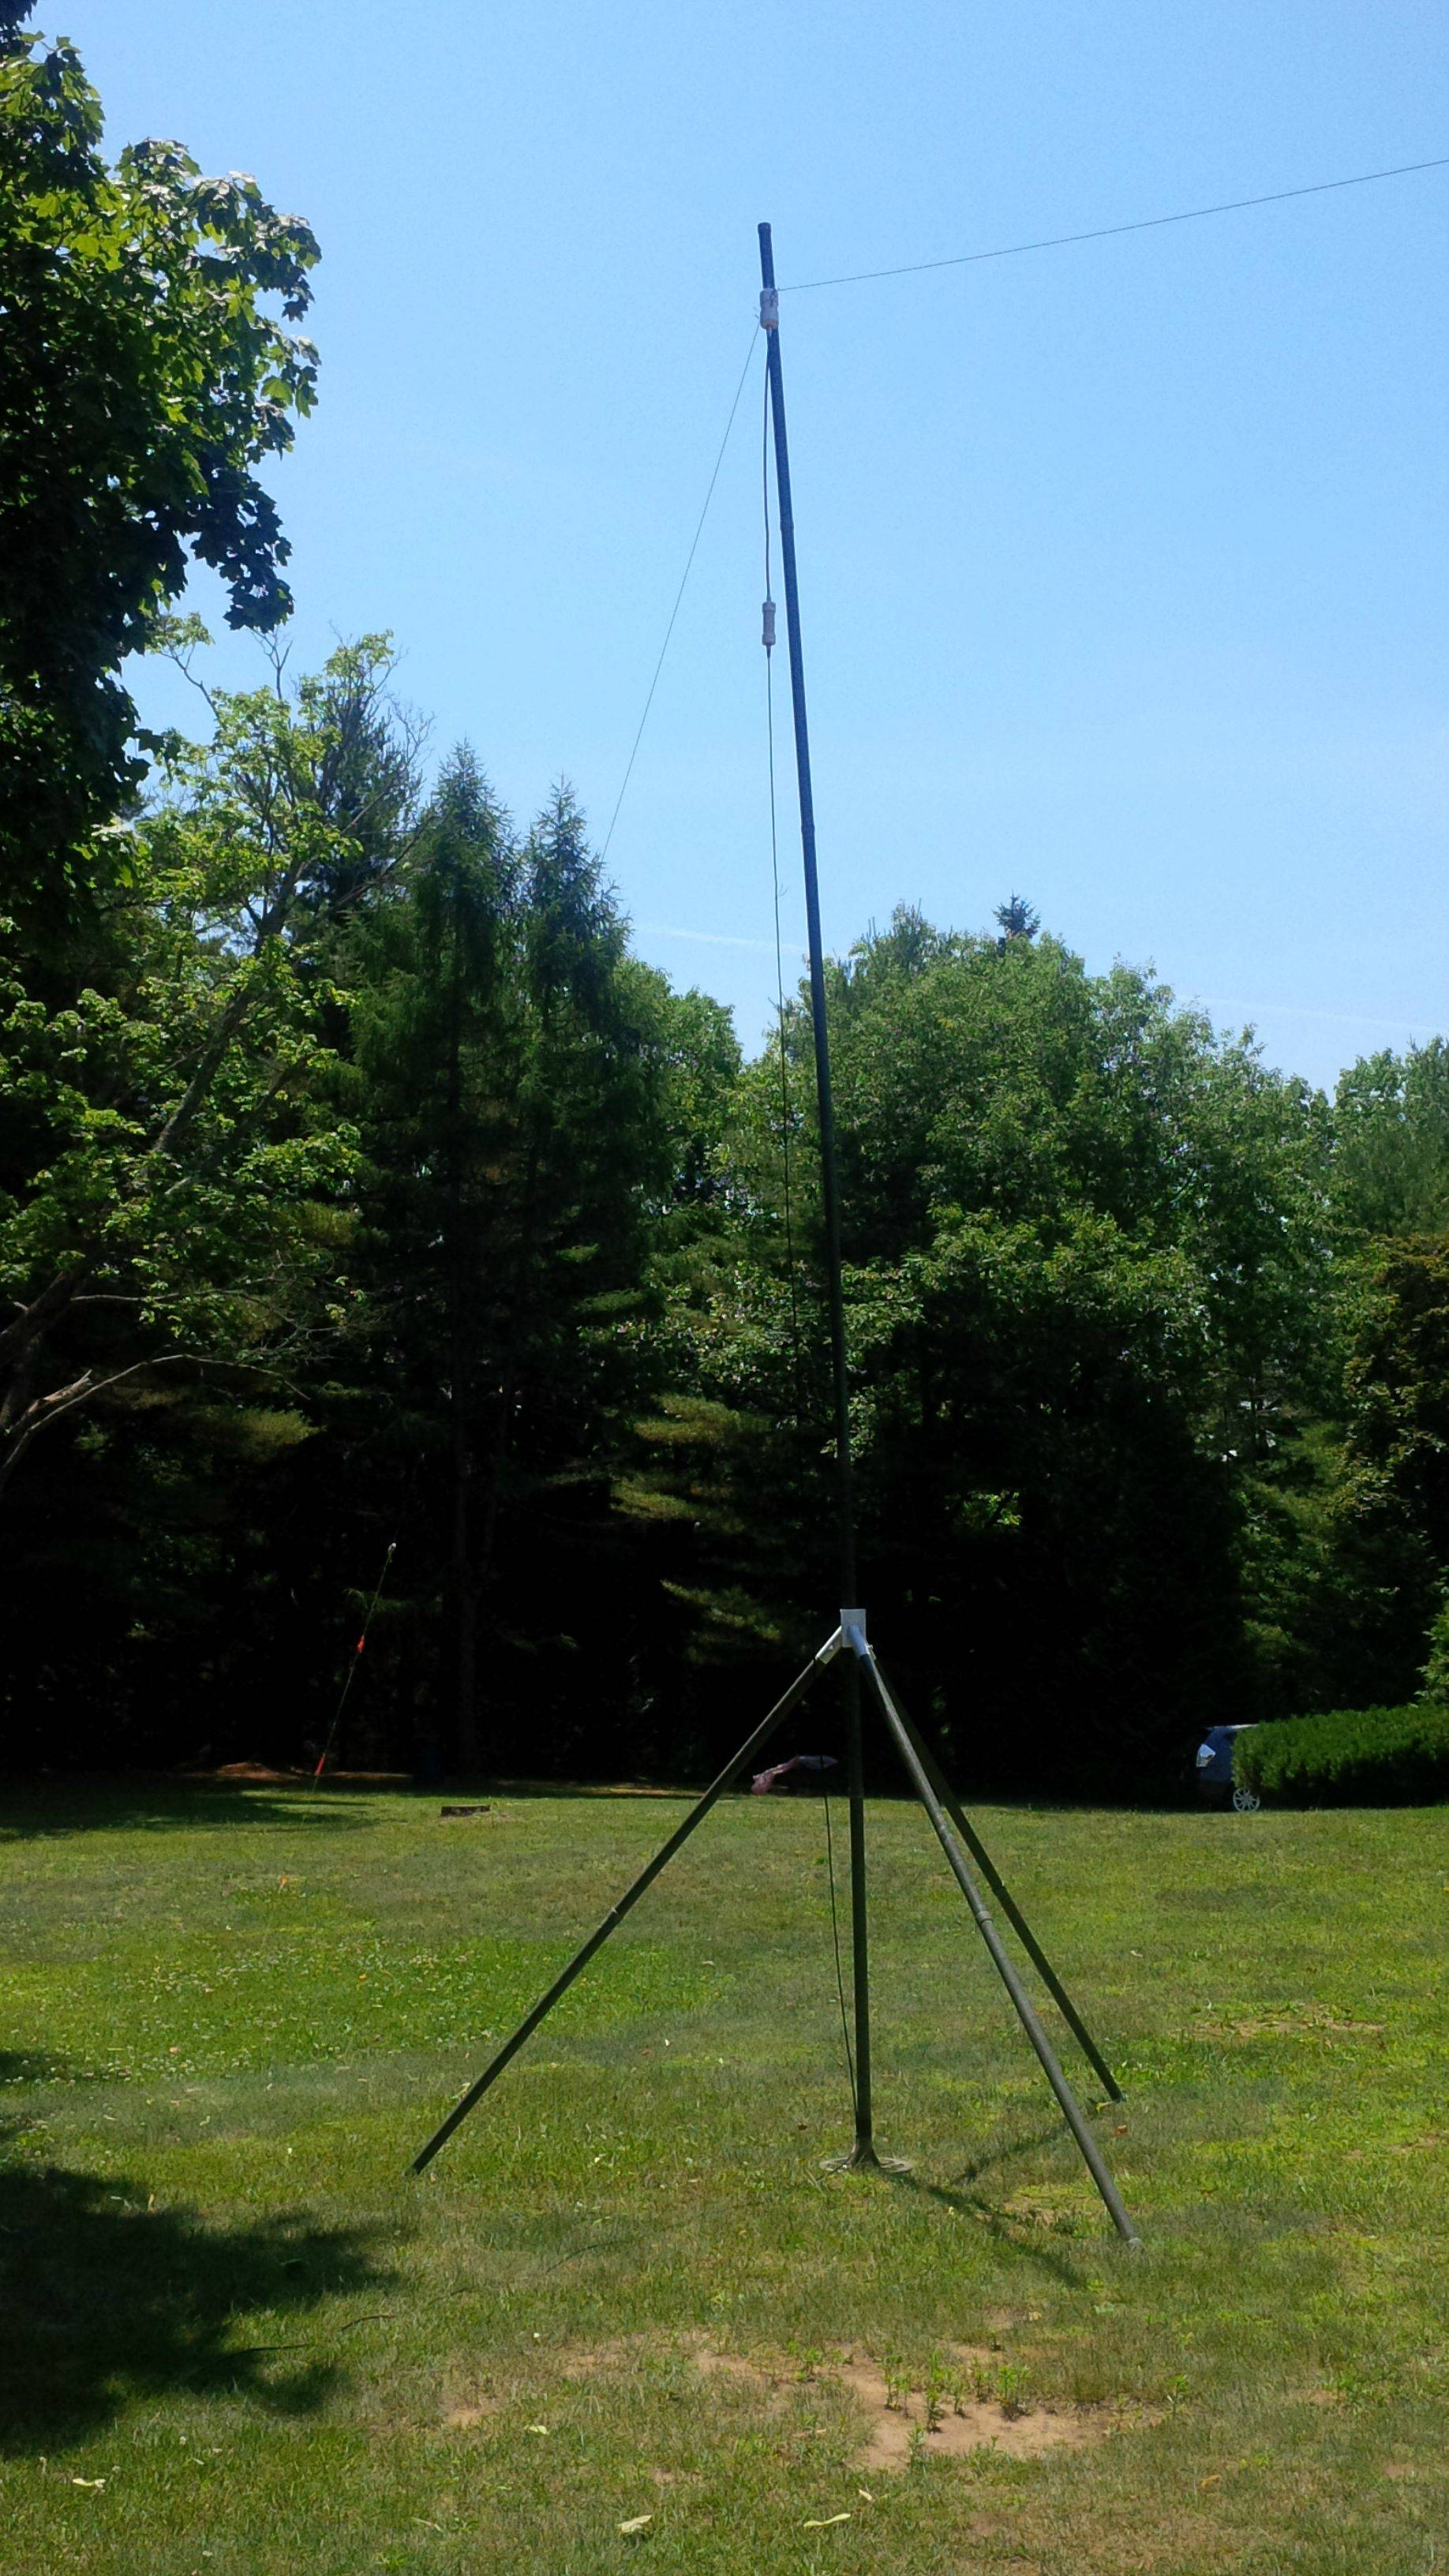 6-k2jji-field-day-2014-5a-nny-digital-station-off-center-dipole